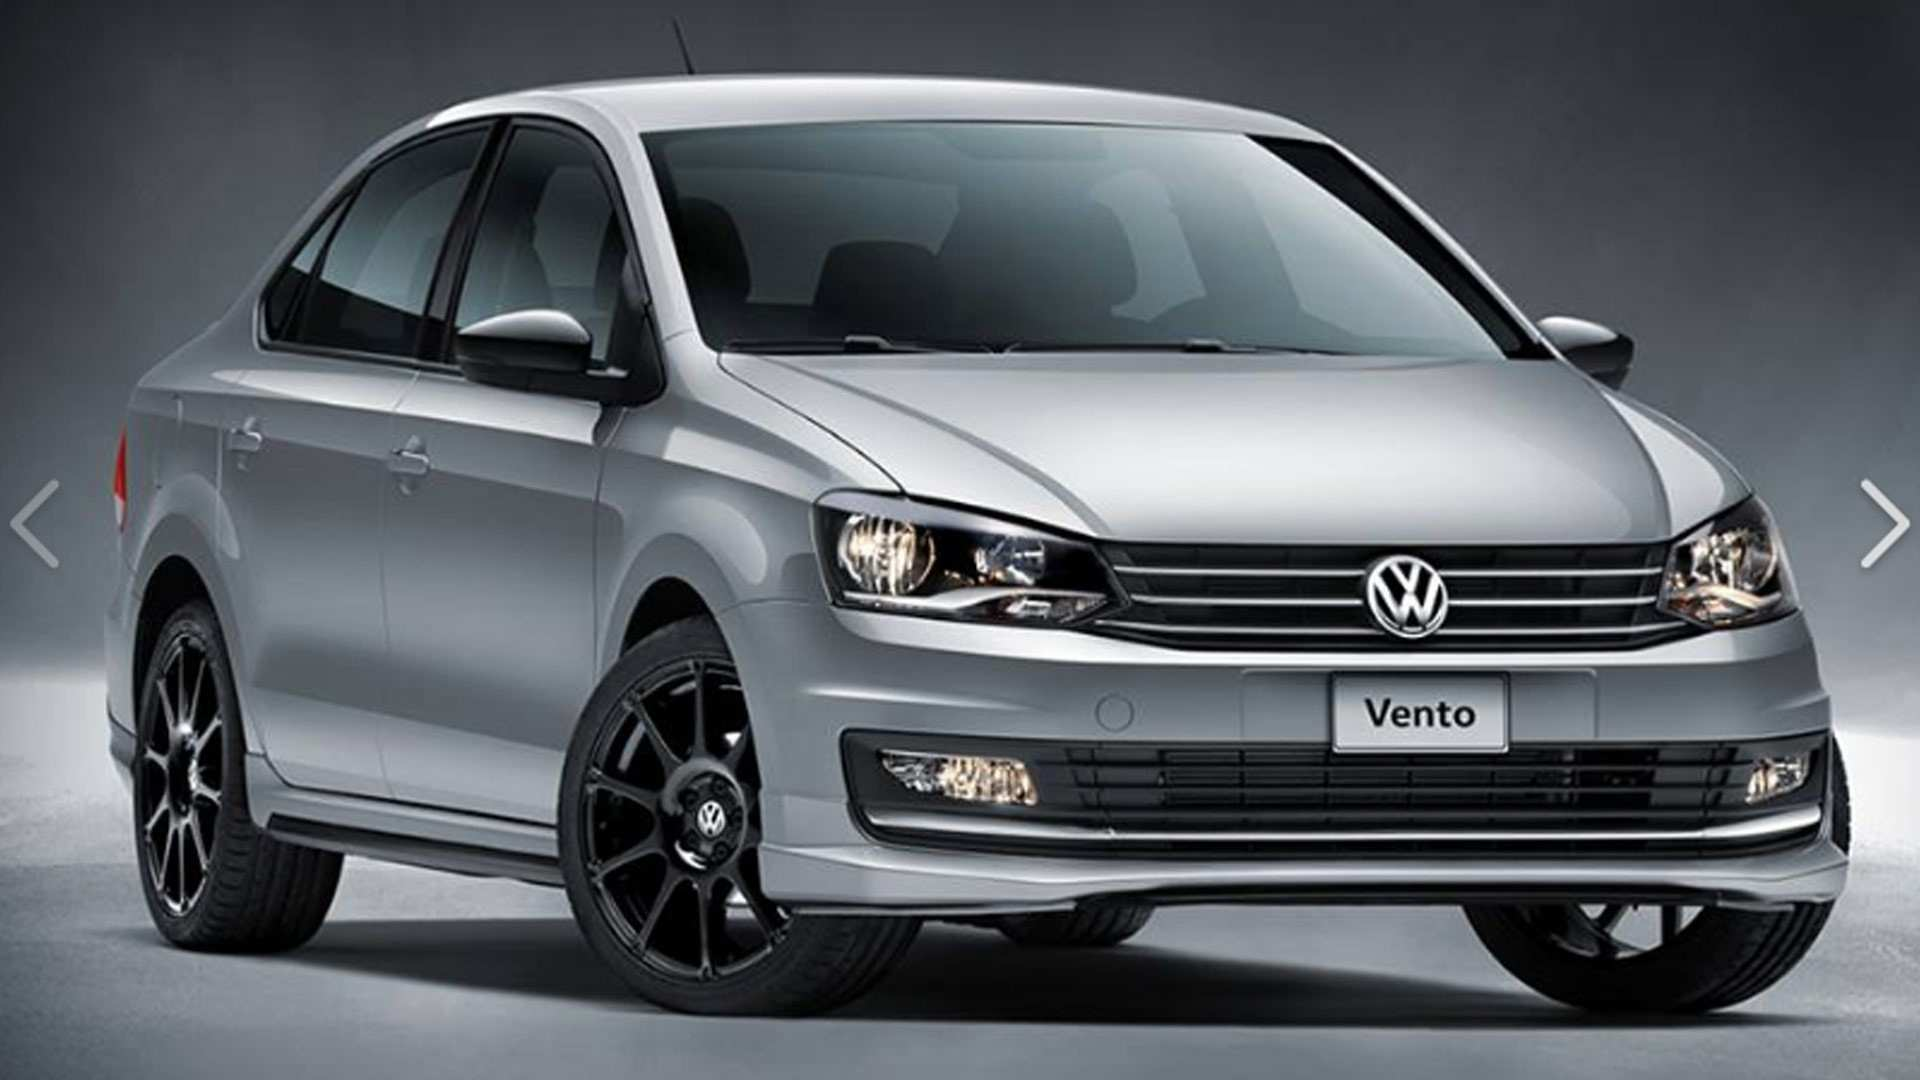 45 New New Volkswagen Vento 2019 India Picture Release Date And Review Configurations by New Volkswagen Vento 2019 India Picture Release Date And Review